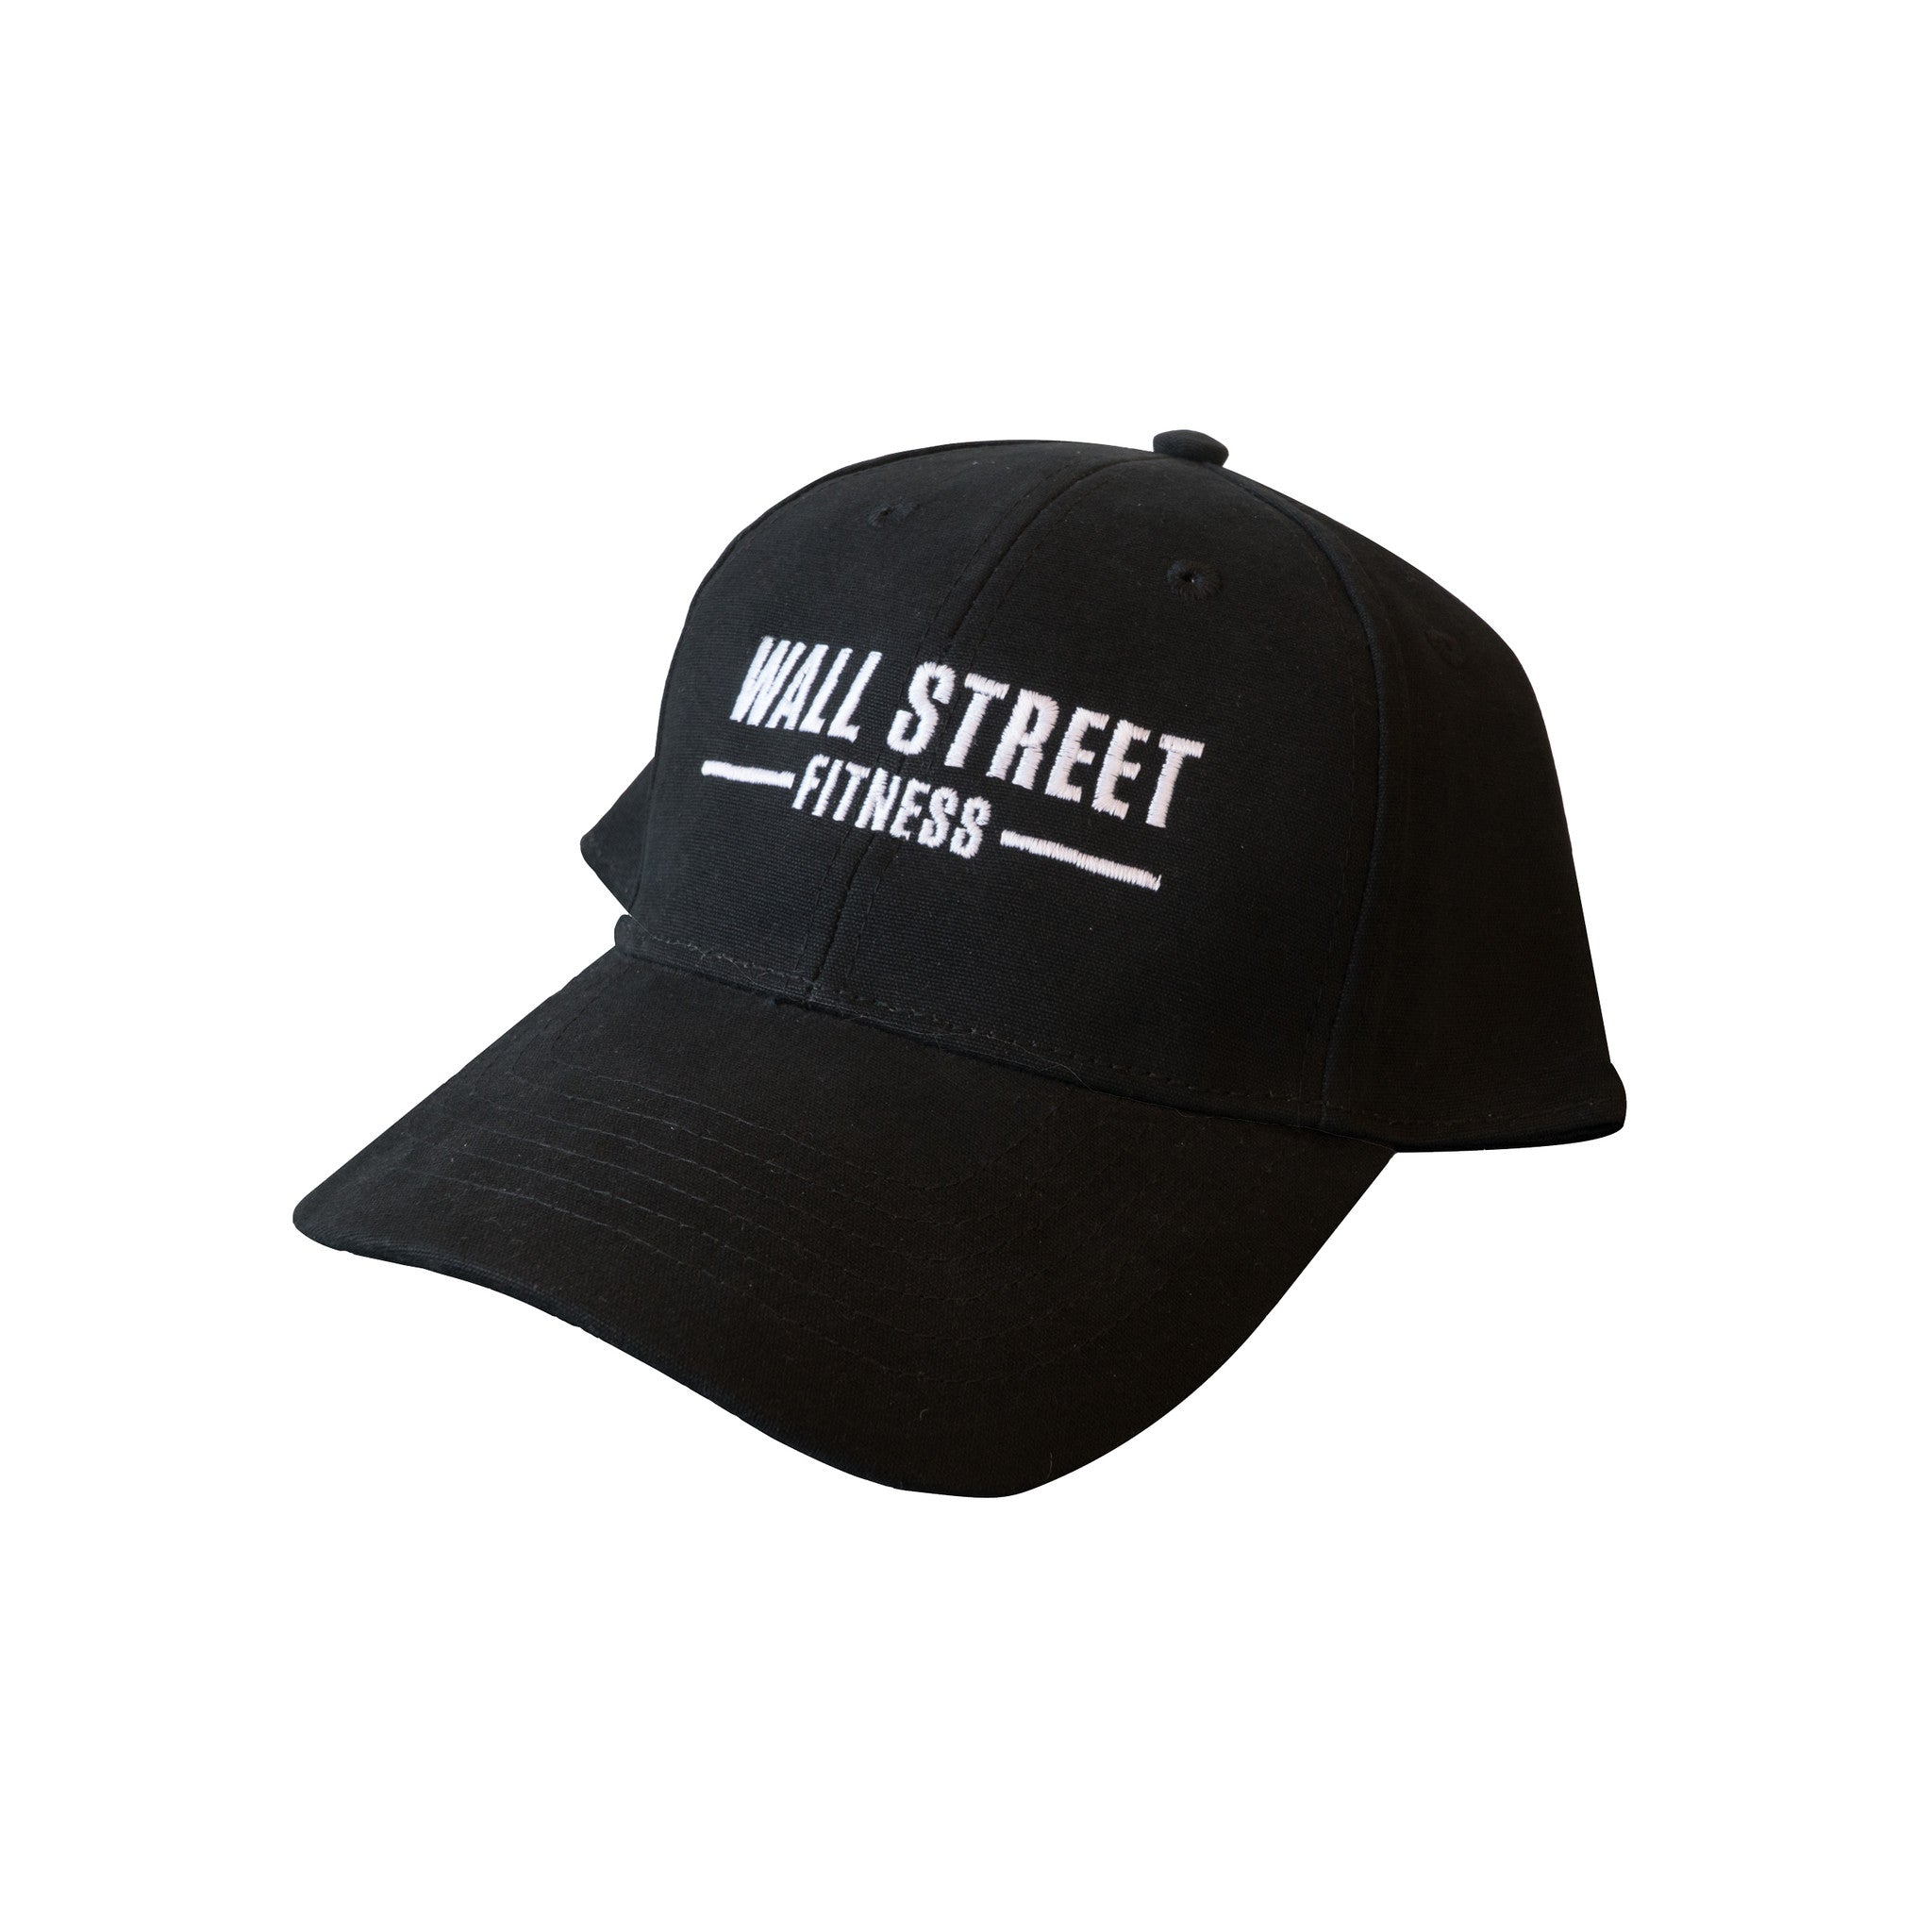 Baseball cap, white on black